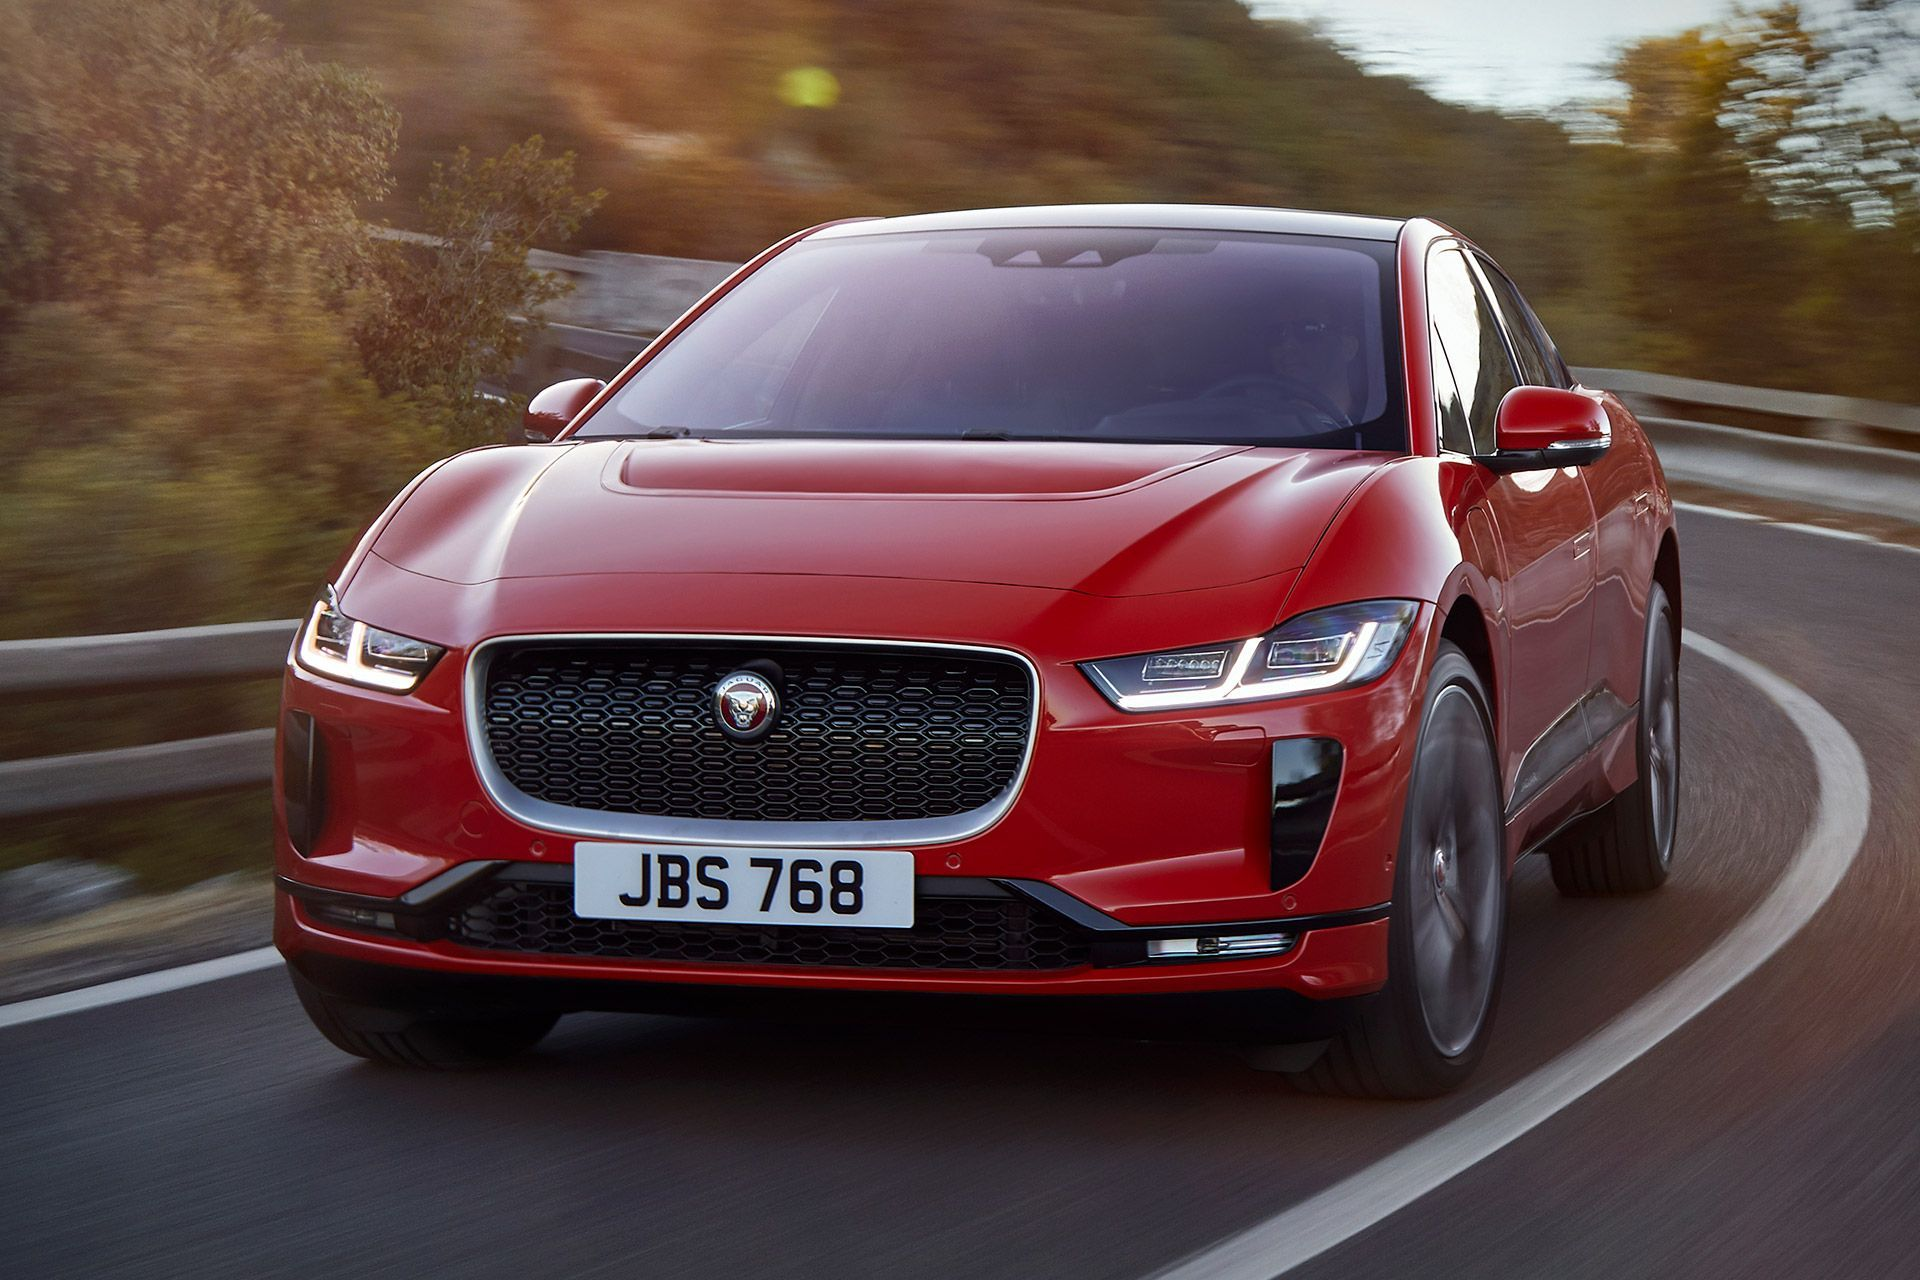 f9dac077c418f Built from the ground-up as an all-electric vehicle, the Jaguar I ...